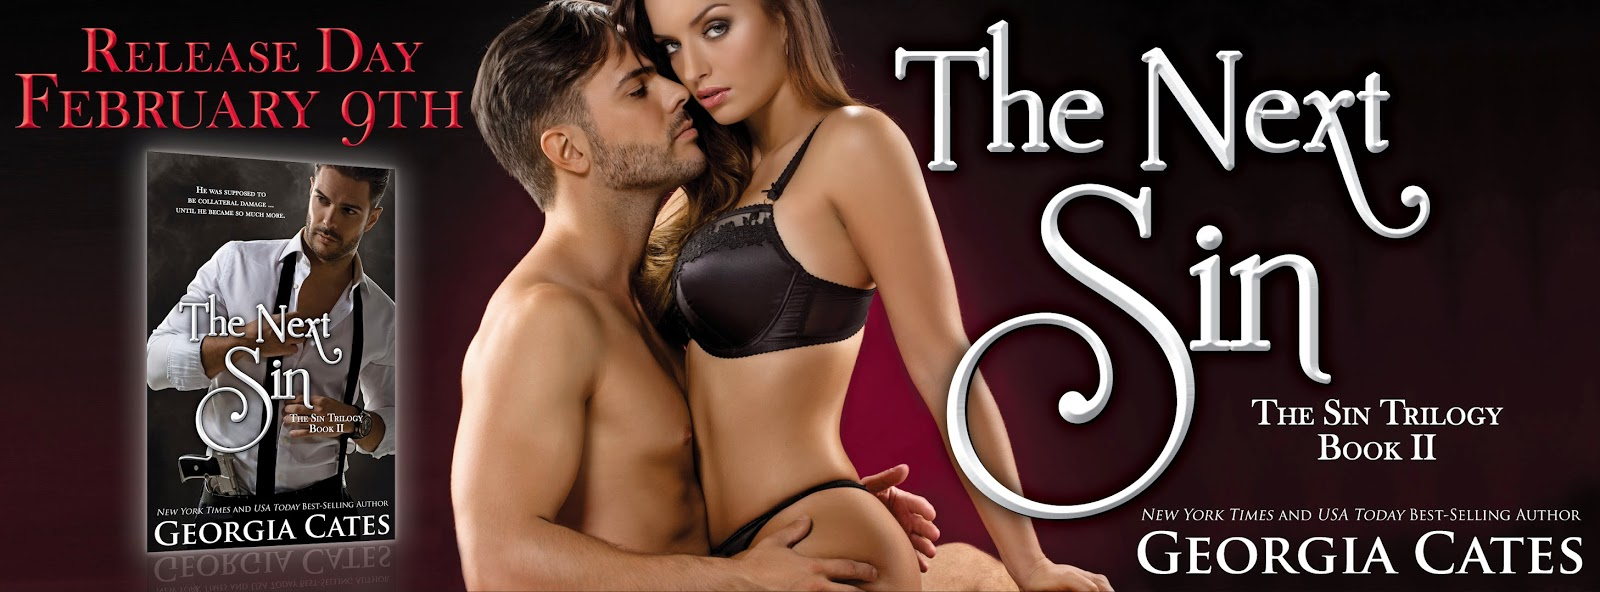 HAPPY RELEASE DAY, Georgia Cates -> THE NEXT SIN #Excerpt #Giveaway